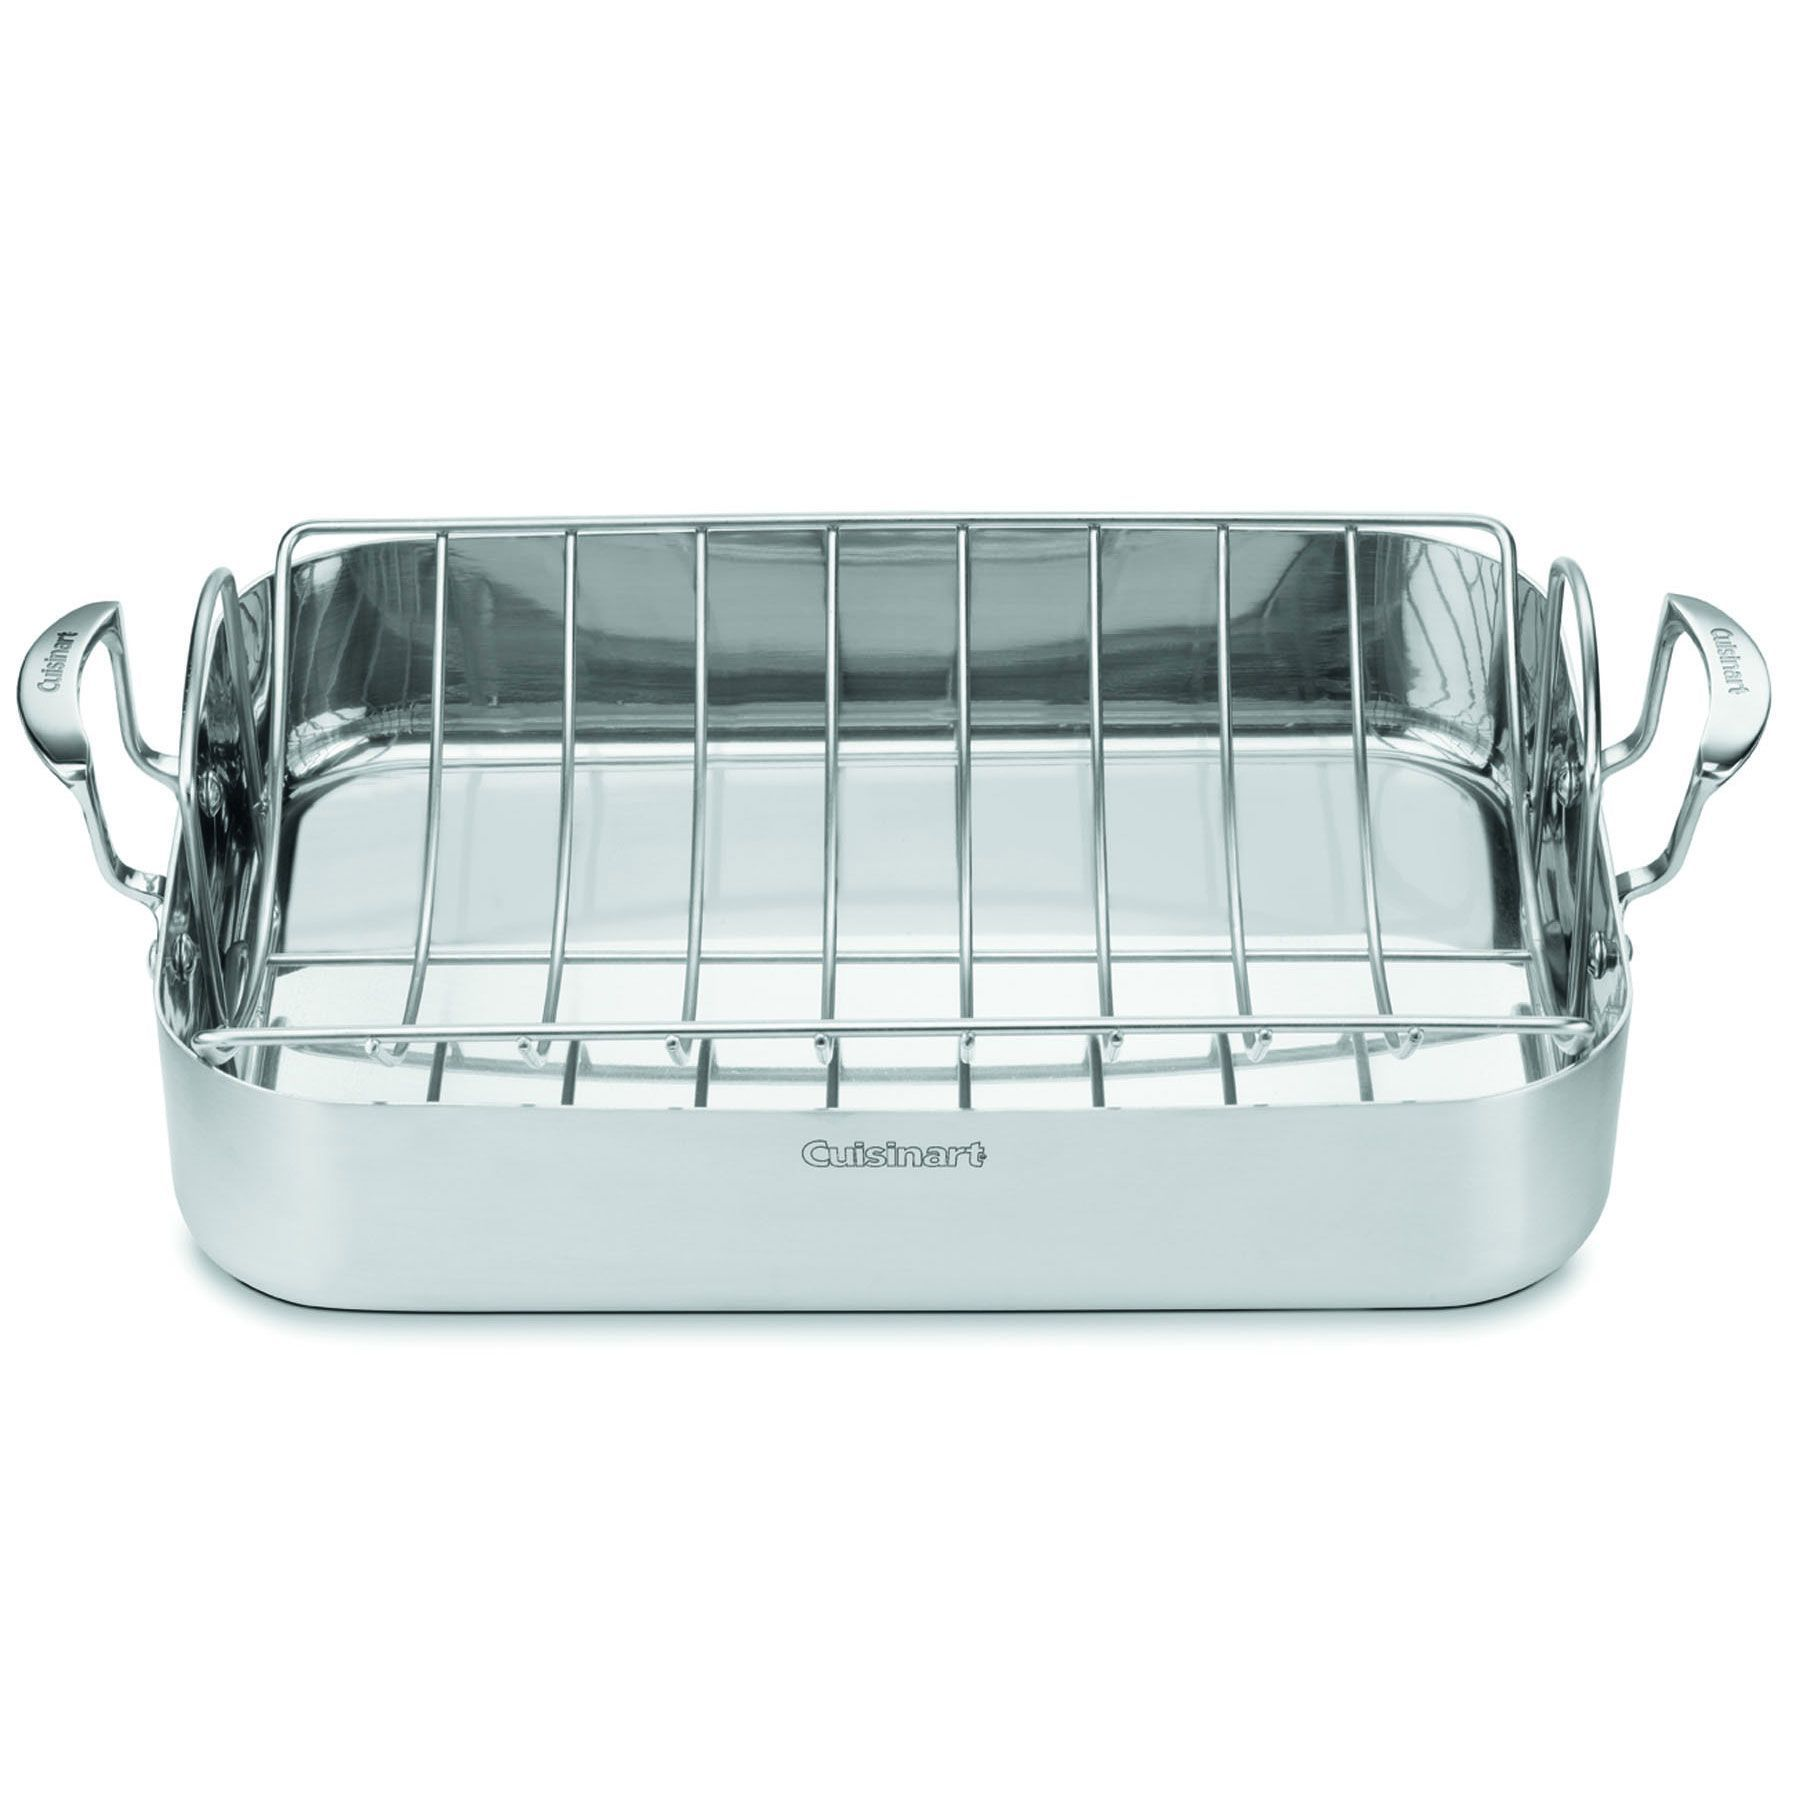 Cuisinart Dish Rack Cuisinart Multiclad Pro Stainless 16Inch Rectangular Roaster With